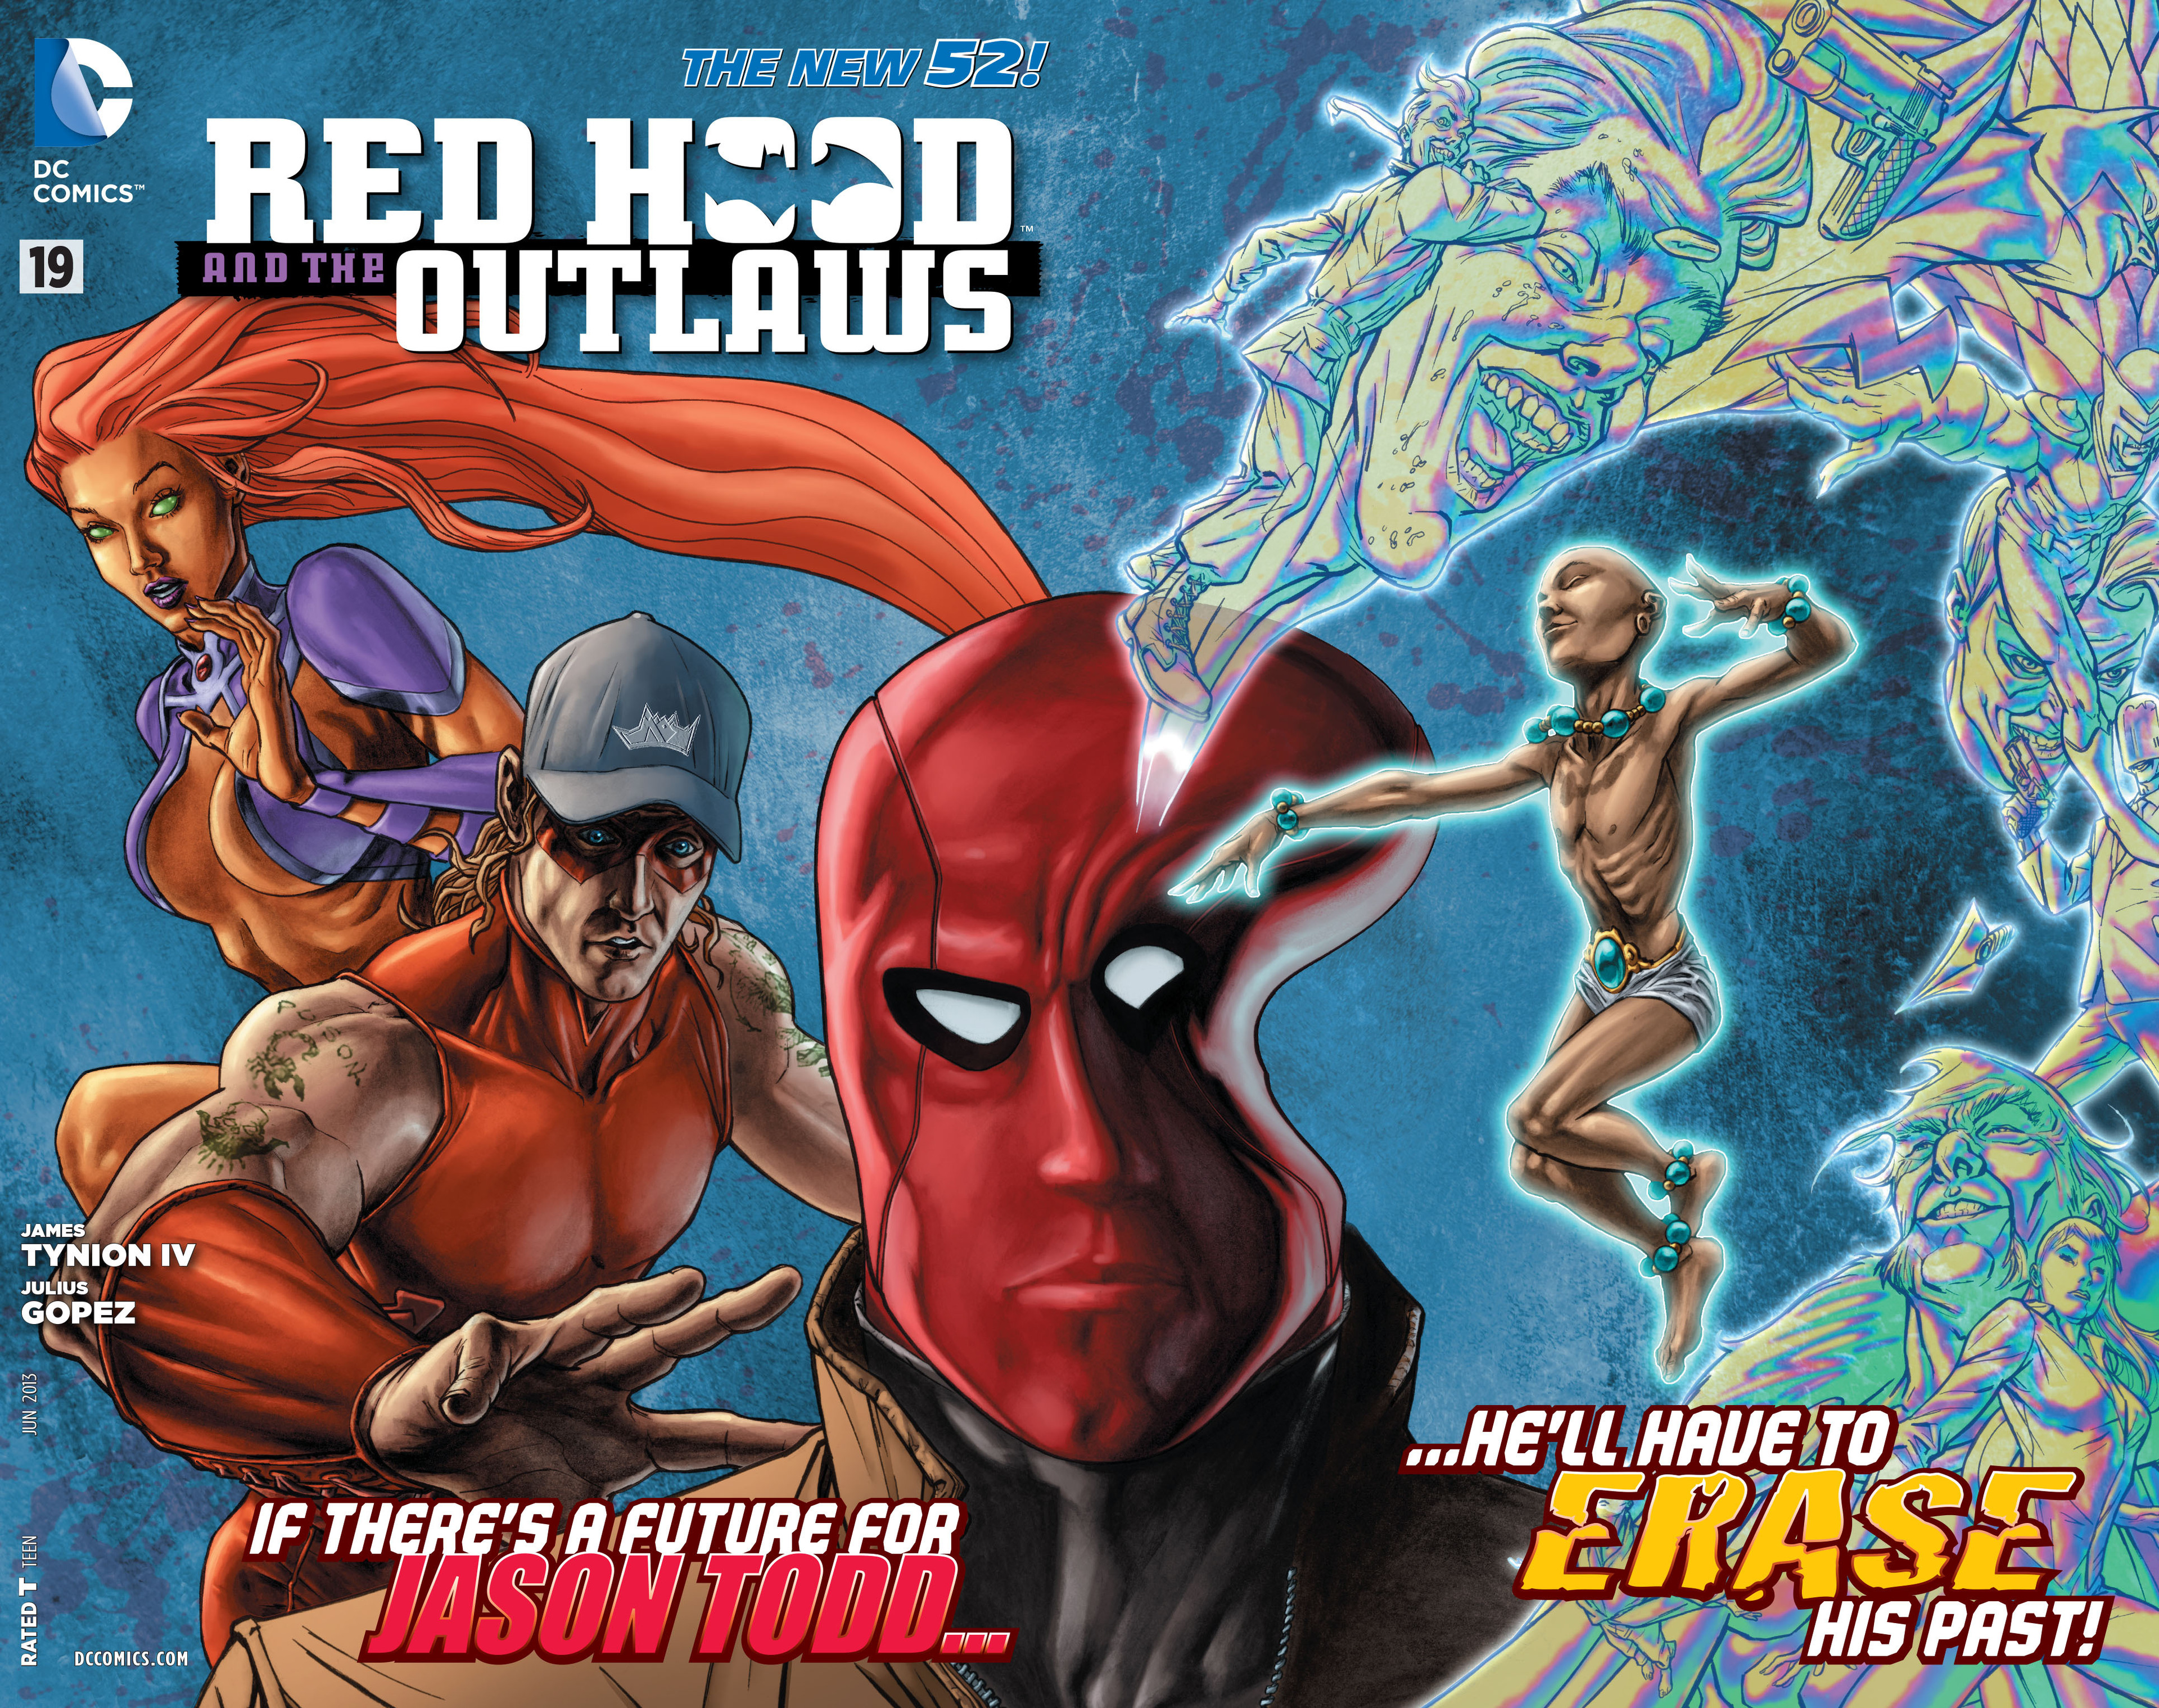 Red Hood and the Outlaws 0019b